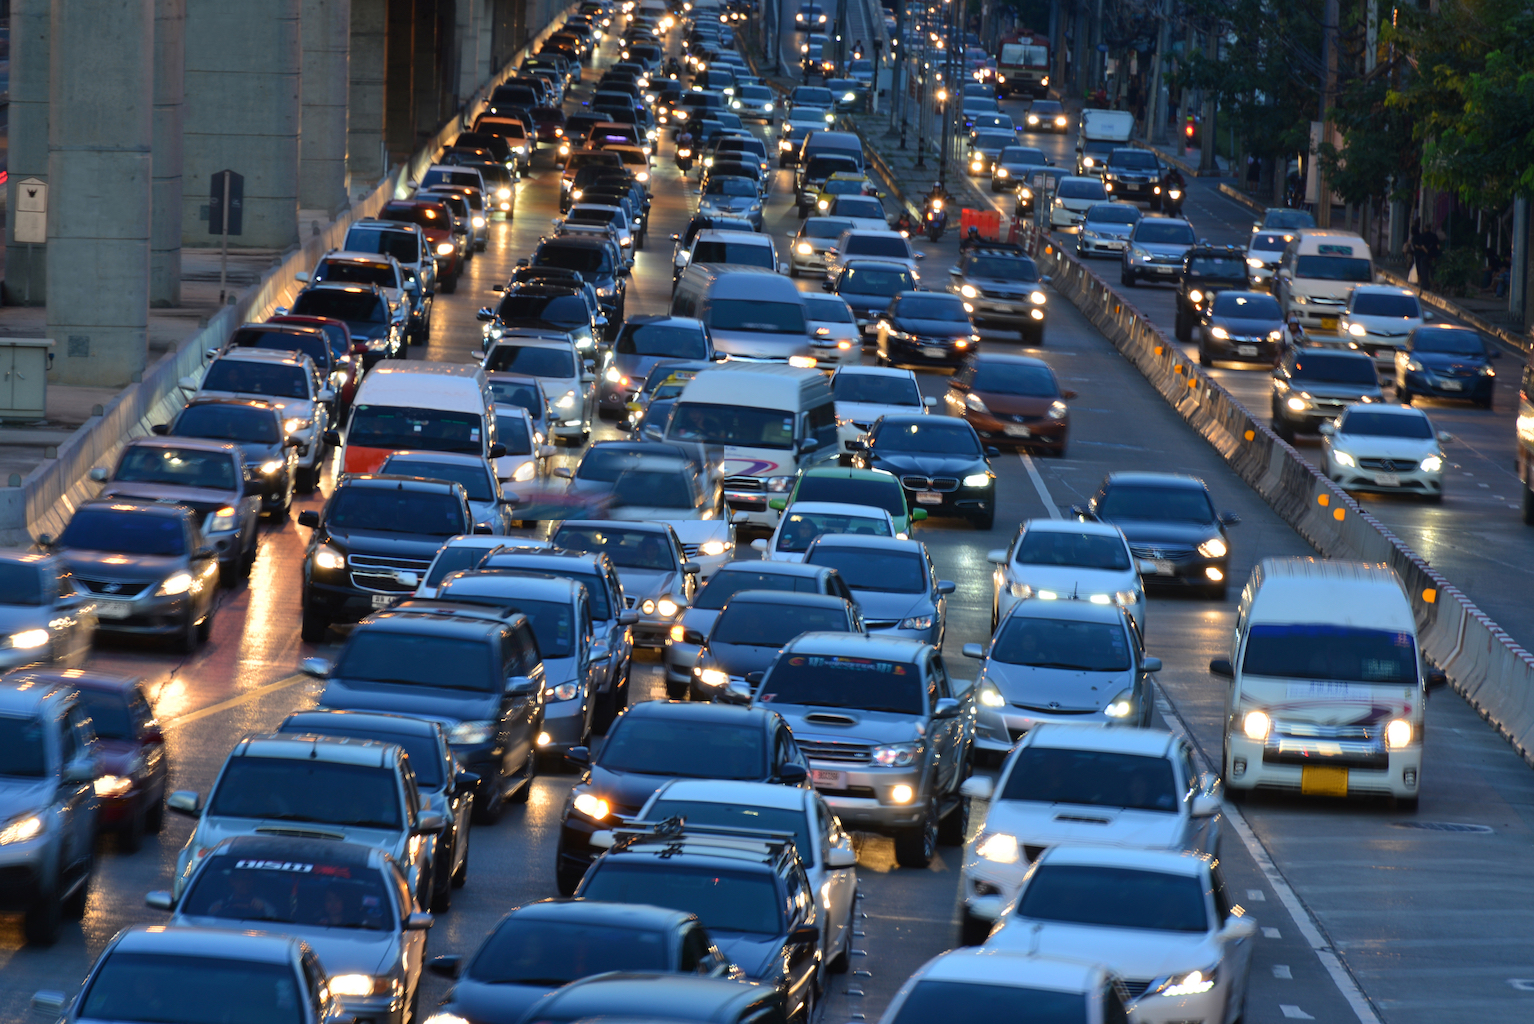 Policies that encourage carpooling do in fact drastically reduce traffic, according to a new study from MIT.